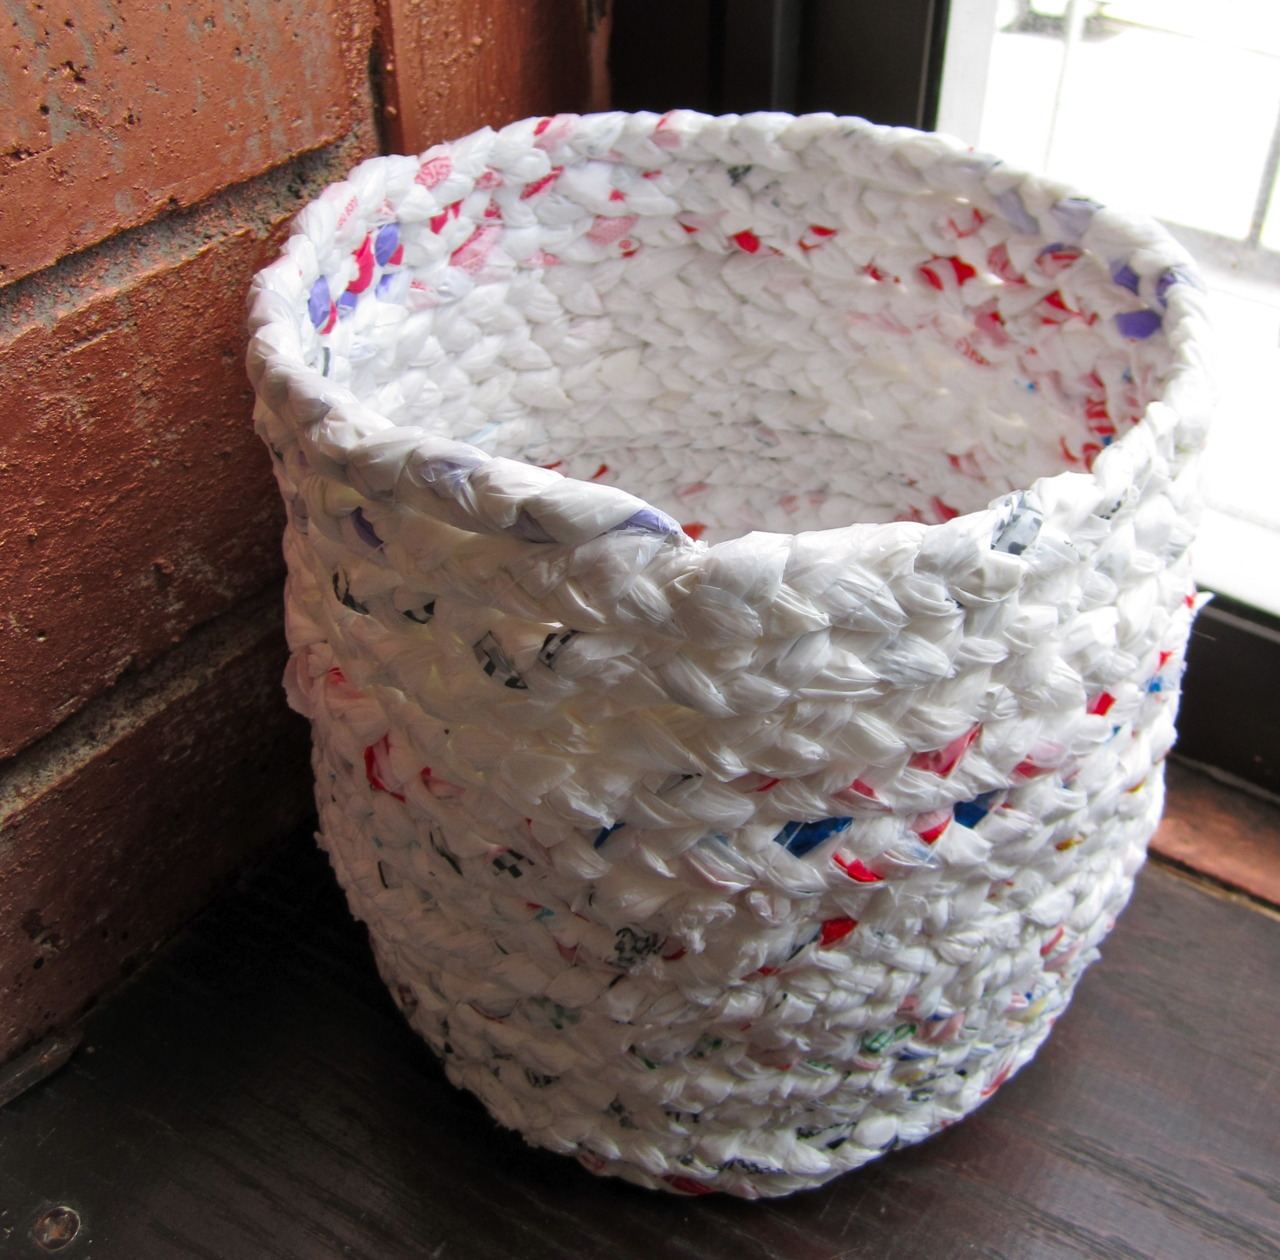 The finished basket - I think I'm in love. :D The whole tutorial is up on instructables, if you'd like to see how to make your own!